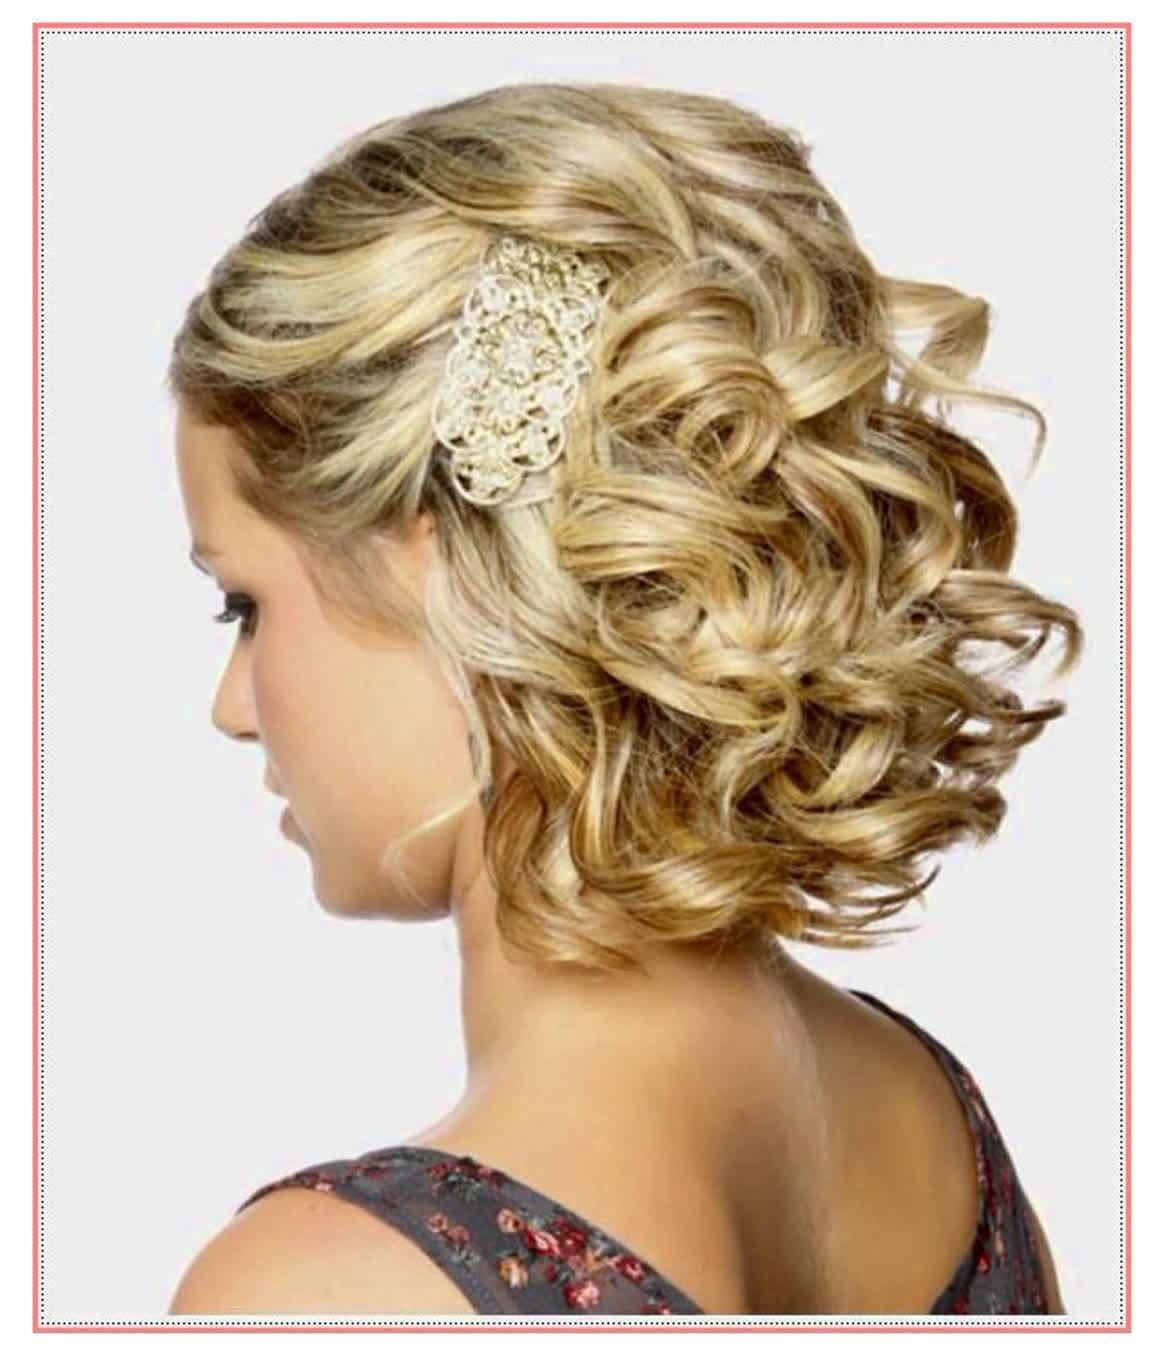 Pin On Hairstyles For Short Hair